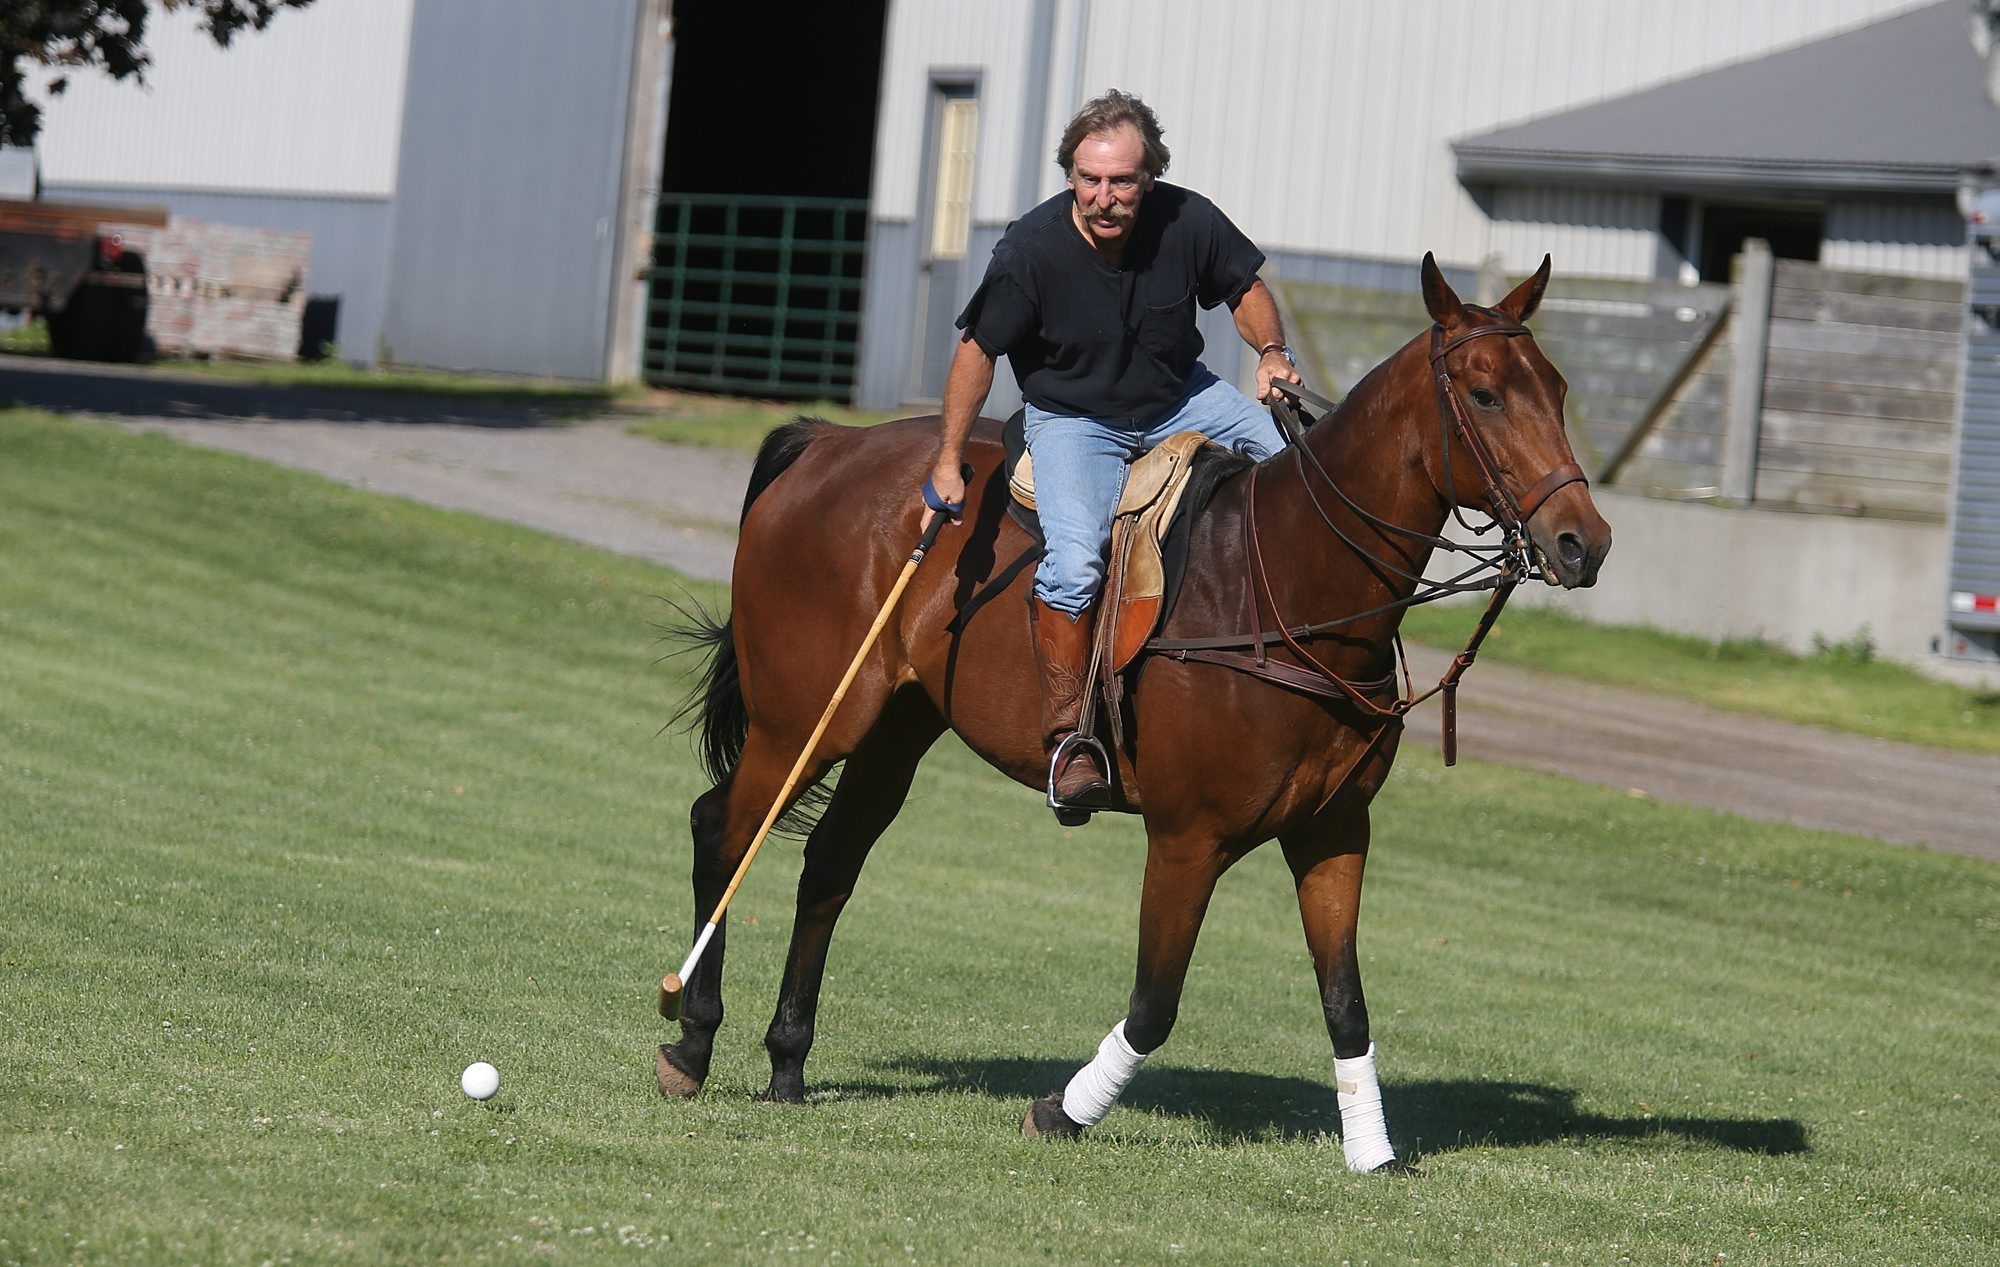 Slade Sharpsteen practices polo moves with his polo horse Squirt on his Town of Cambria farm.